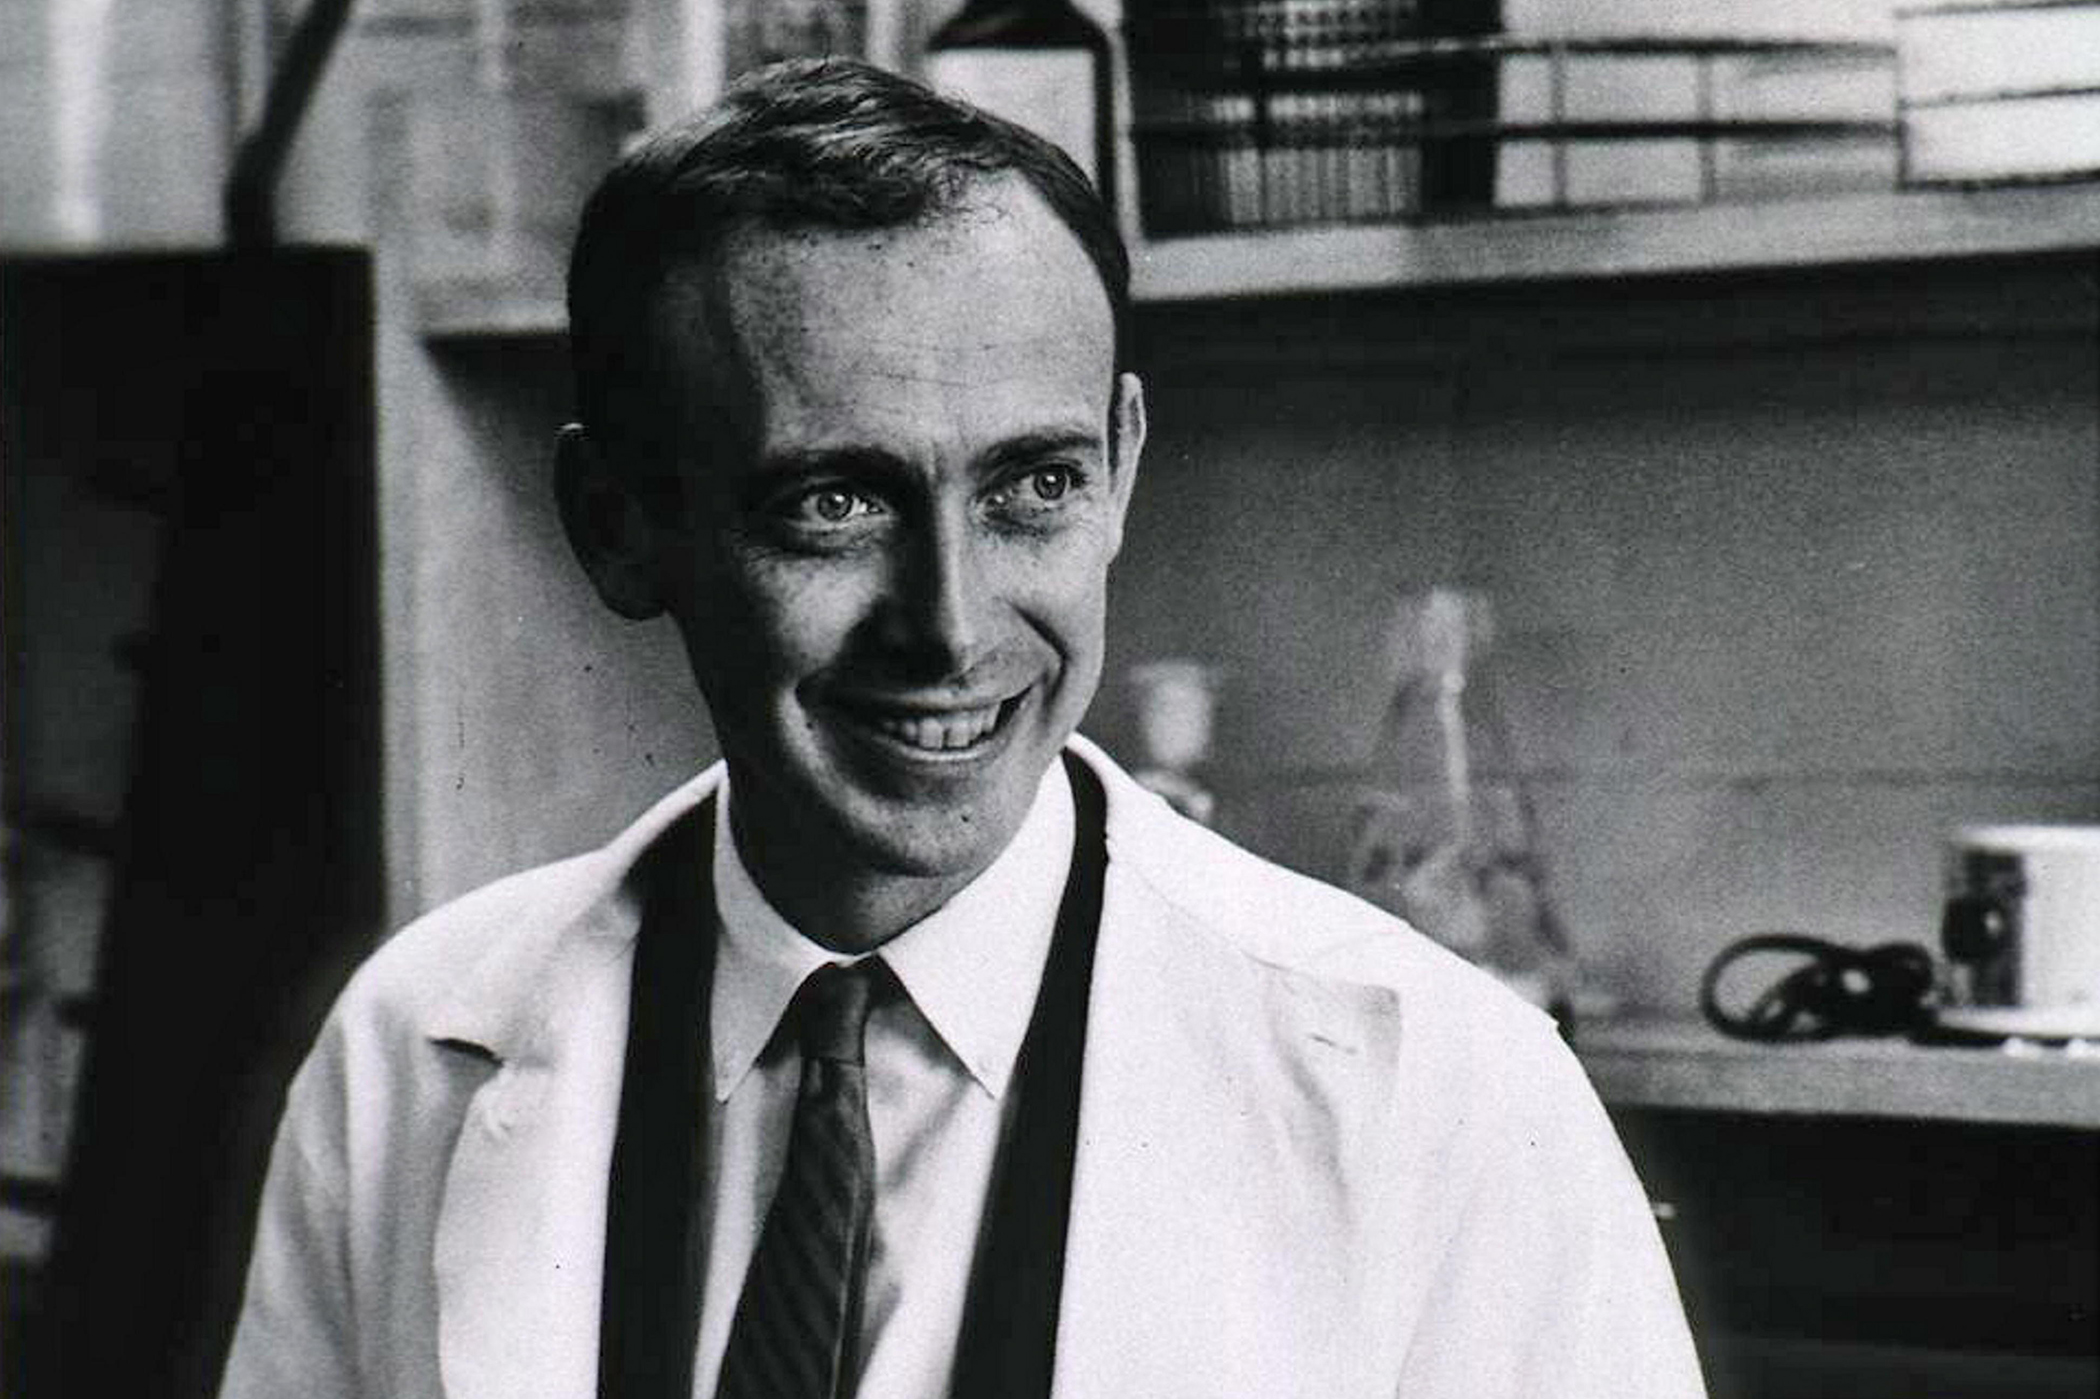 Photograph of James Watson (1928-) an American molecular biologist, geneticist and zoologist, best known as one of the co-discoverers of the structure of DNA in 1953 with Francis Crick, 1953.